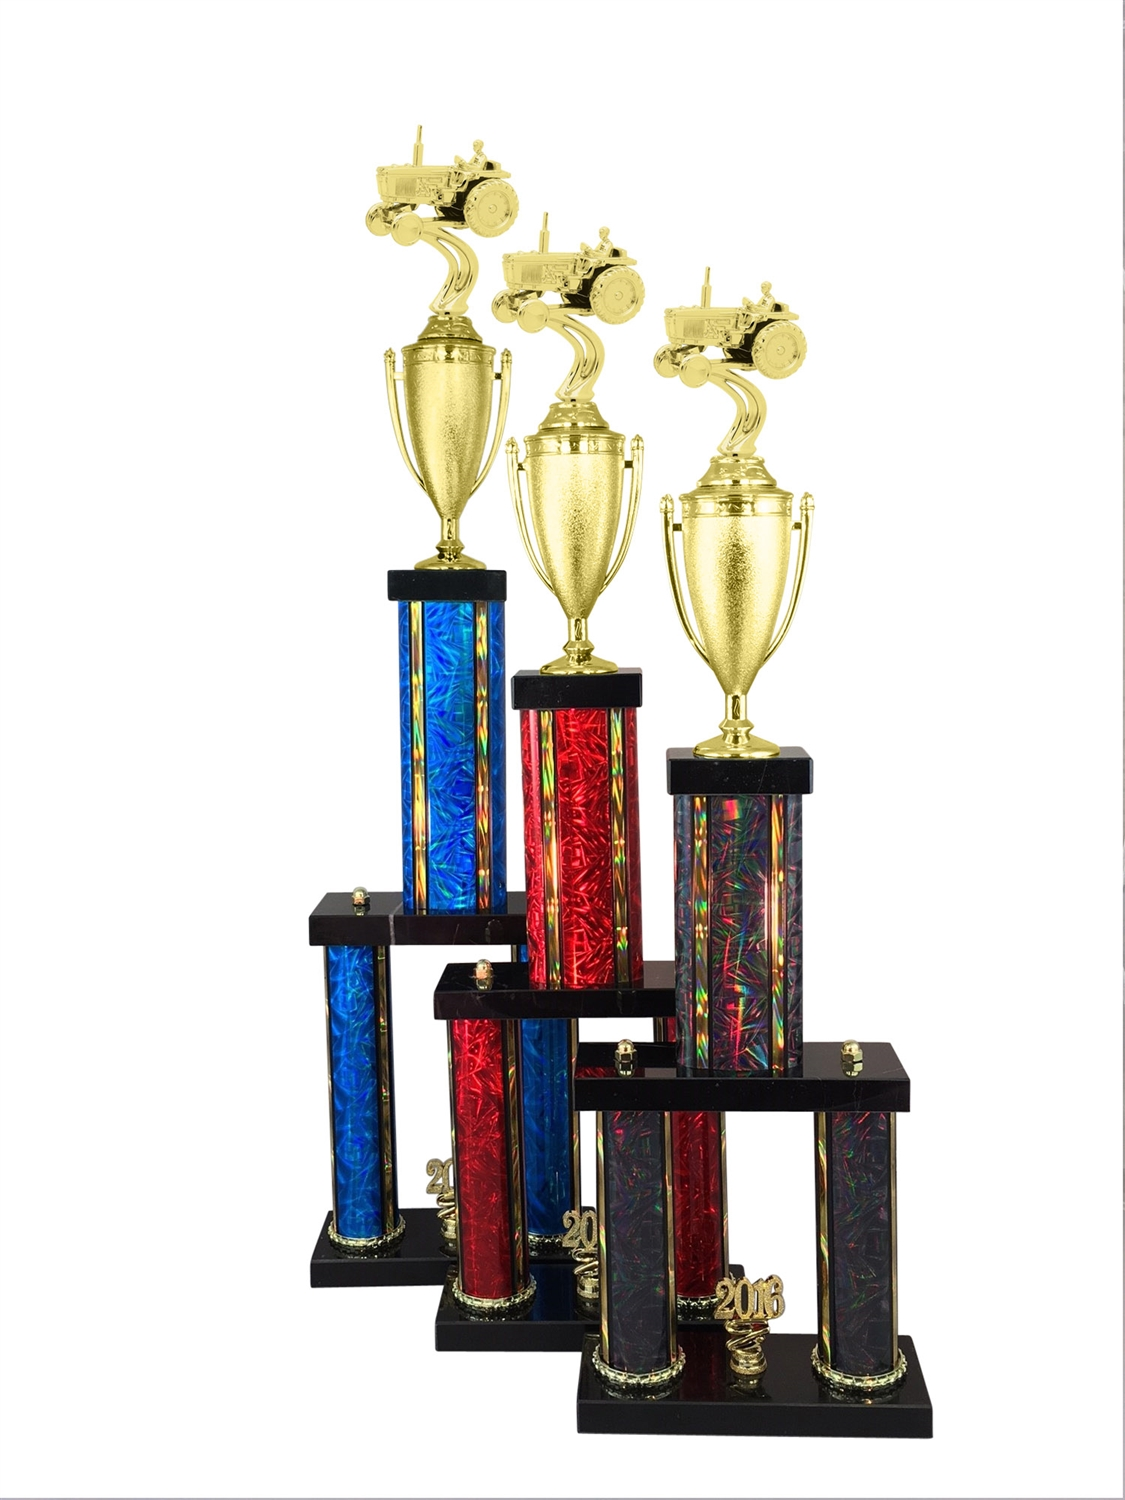 Tractor Trophy Available in 11 Color & 6 Size Options